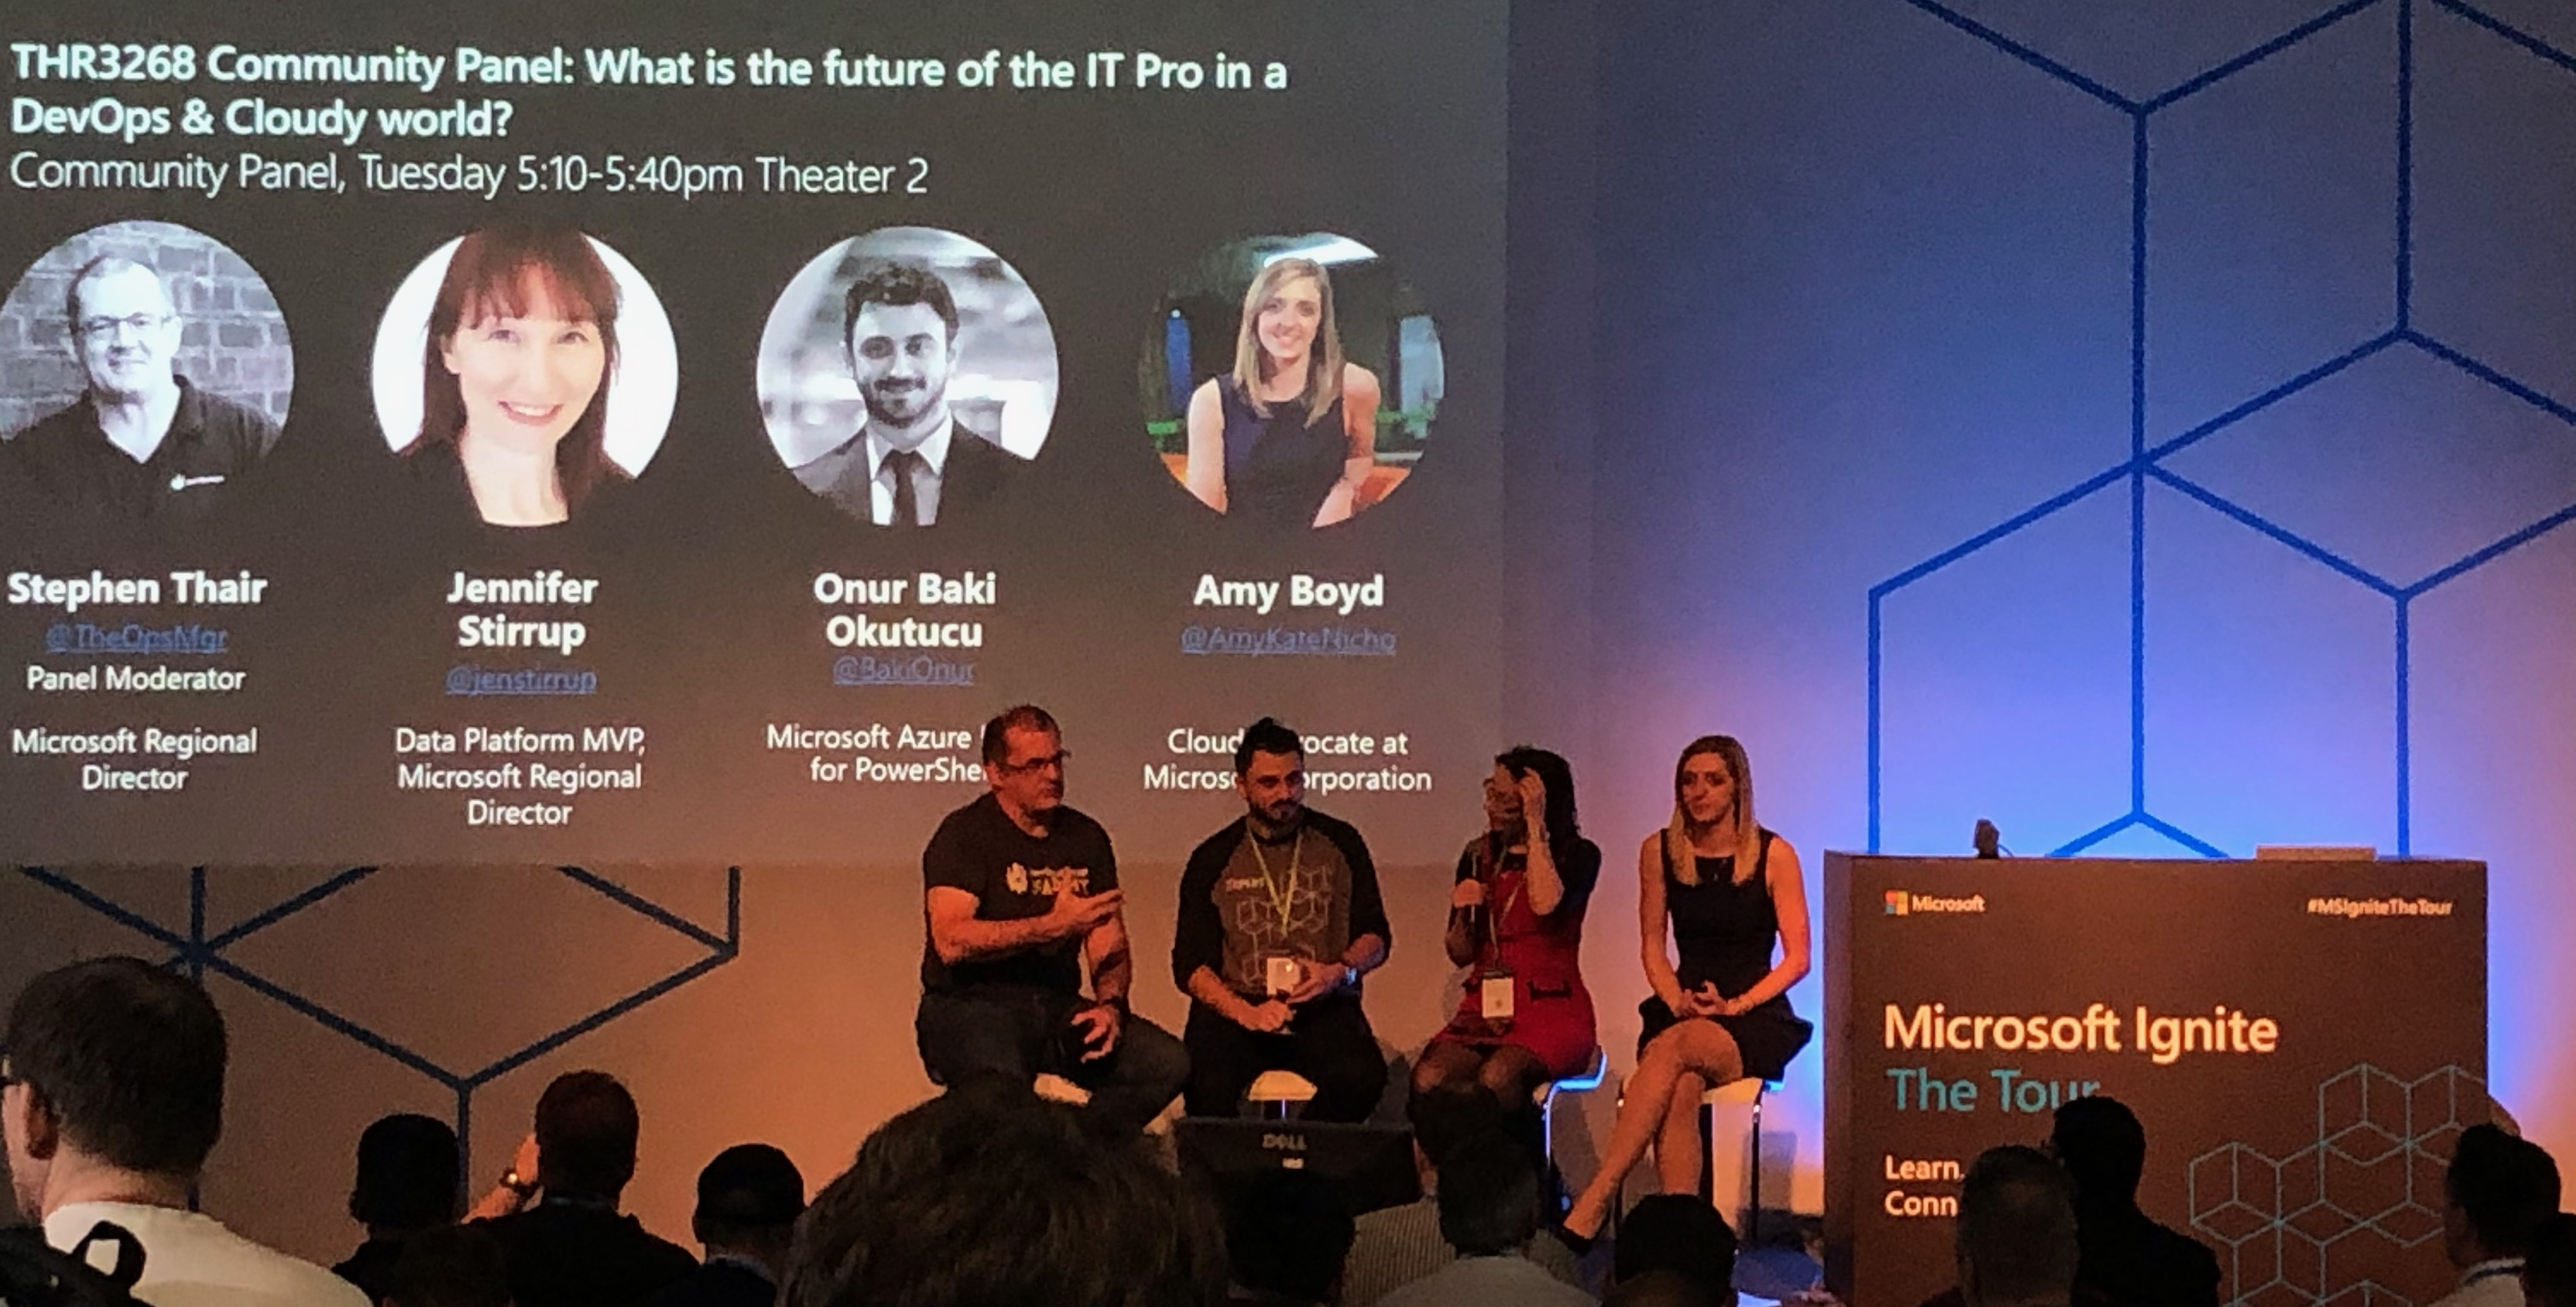 Amy Boyd, a Cloud Developer Advocate at Microsoft, takes part in a panel at Ignite